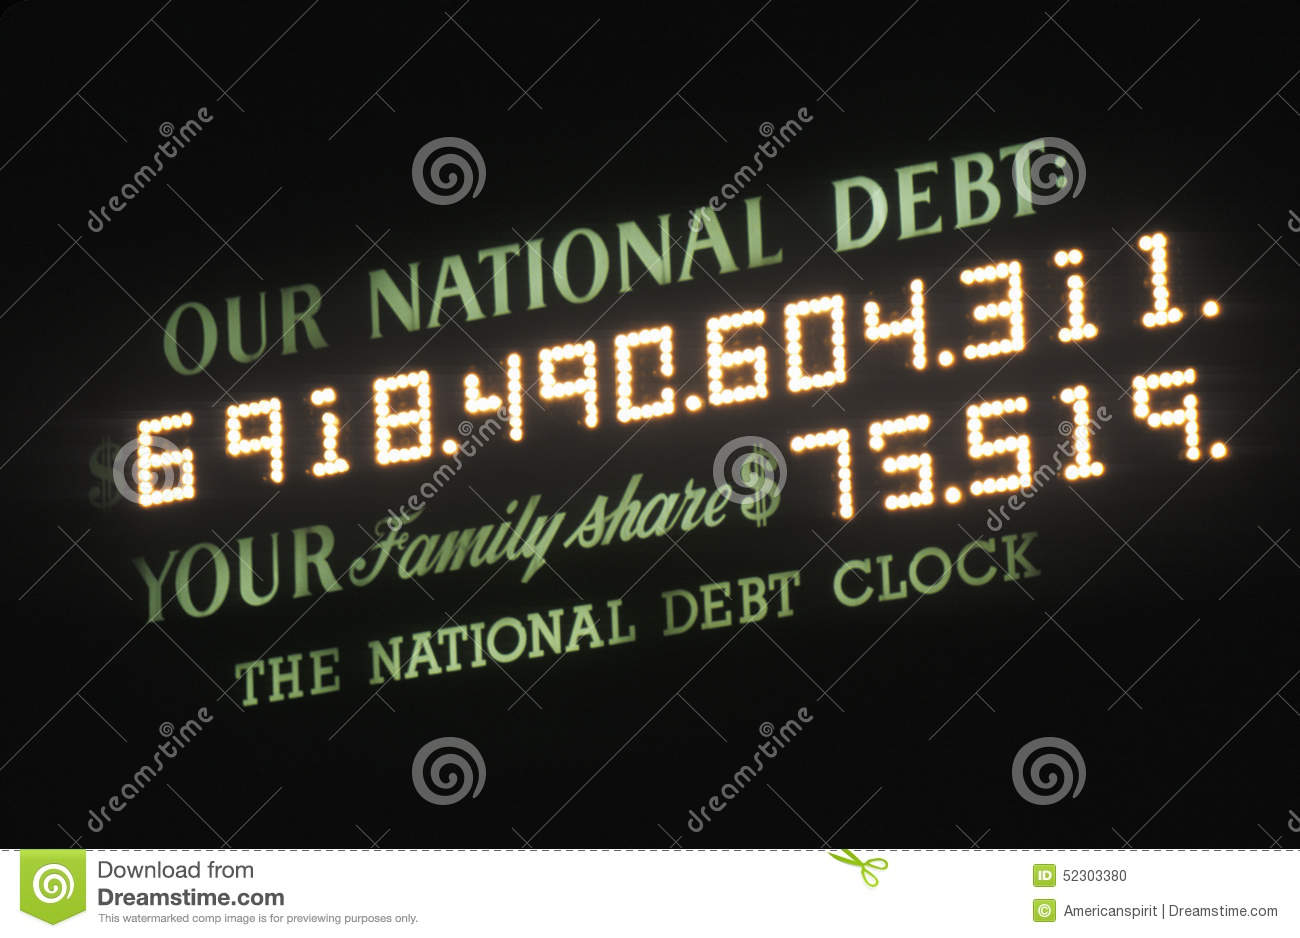 USA National Debt and National Debt Clock in New York City counts money owed by USA